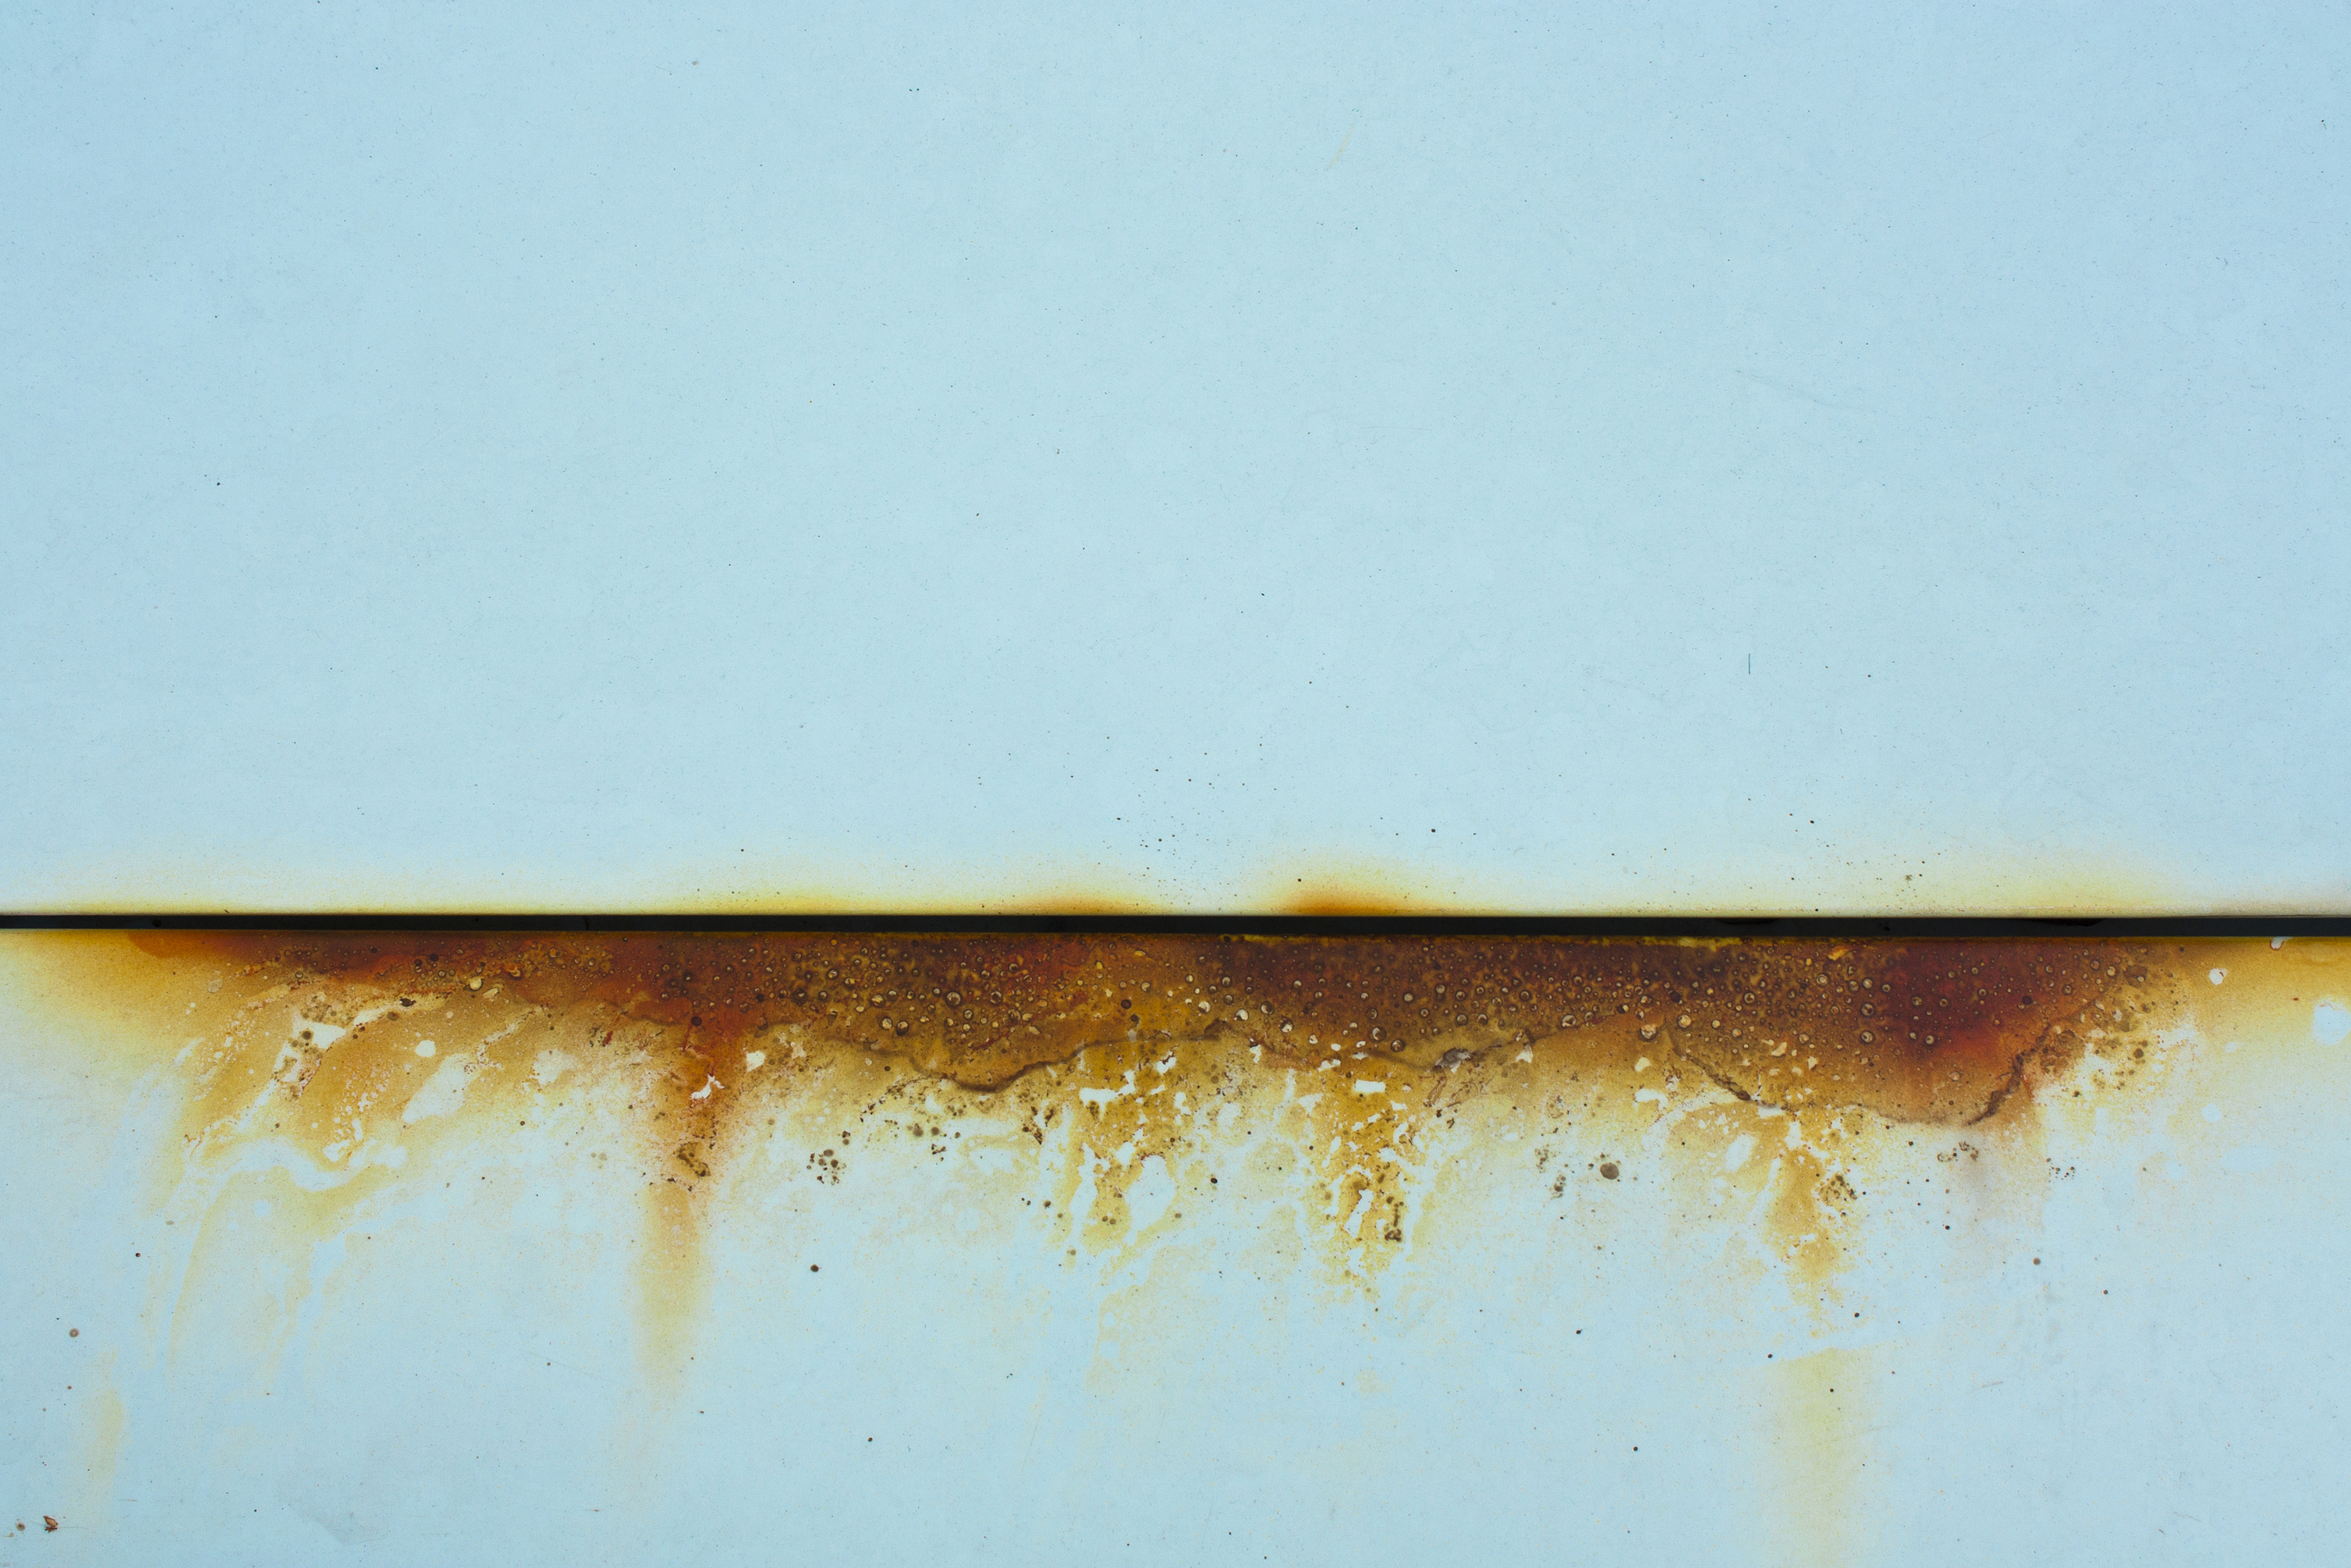 What Chemicals Rust Metal Rapidly? | Sciencing